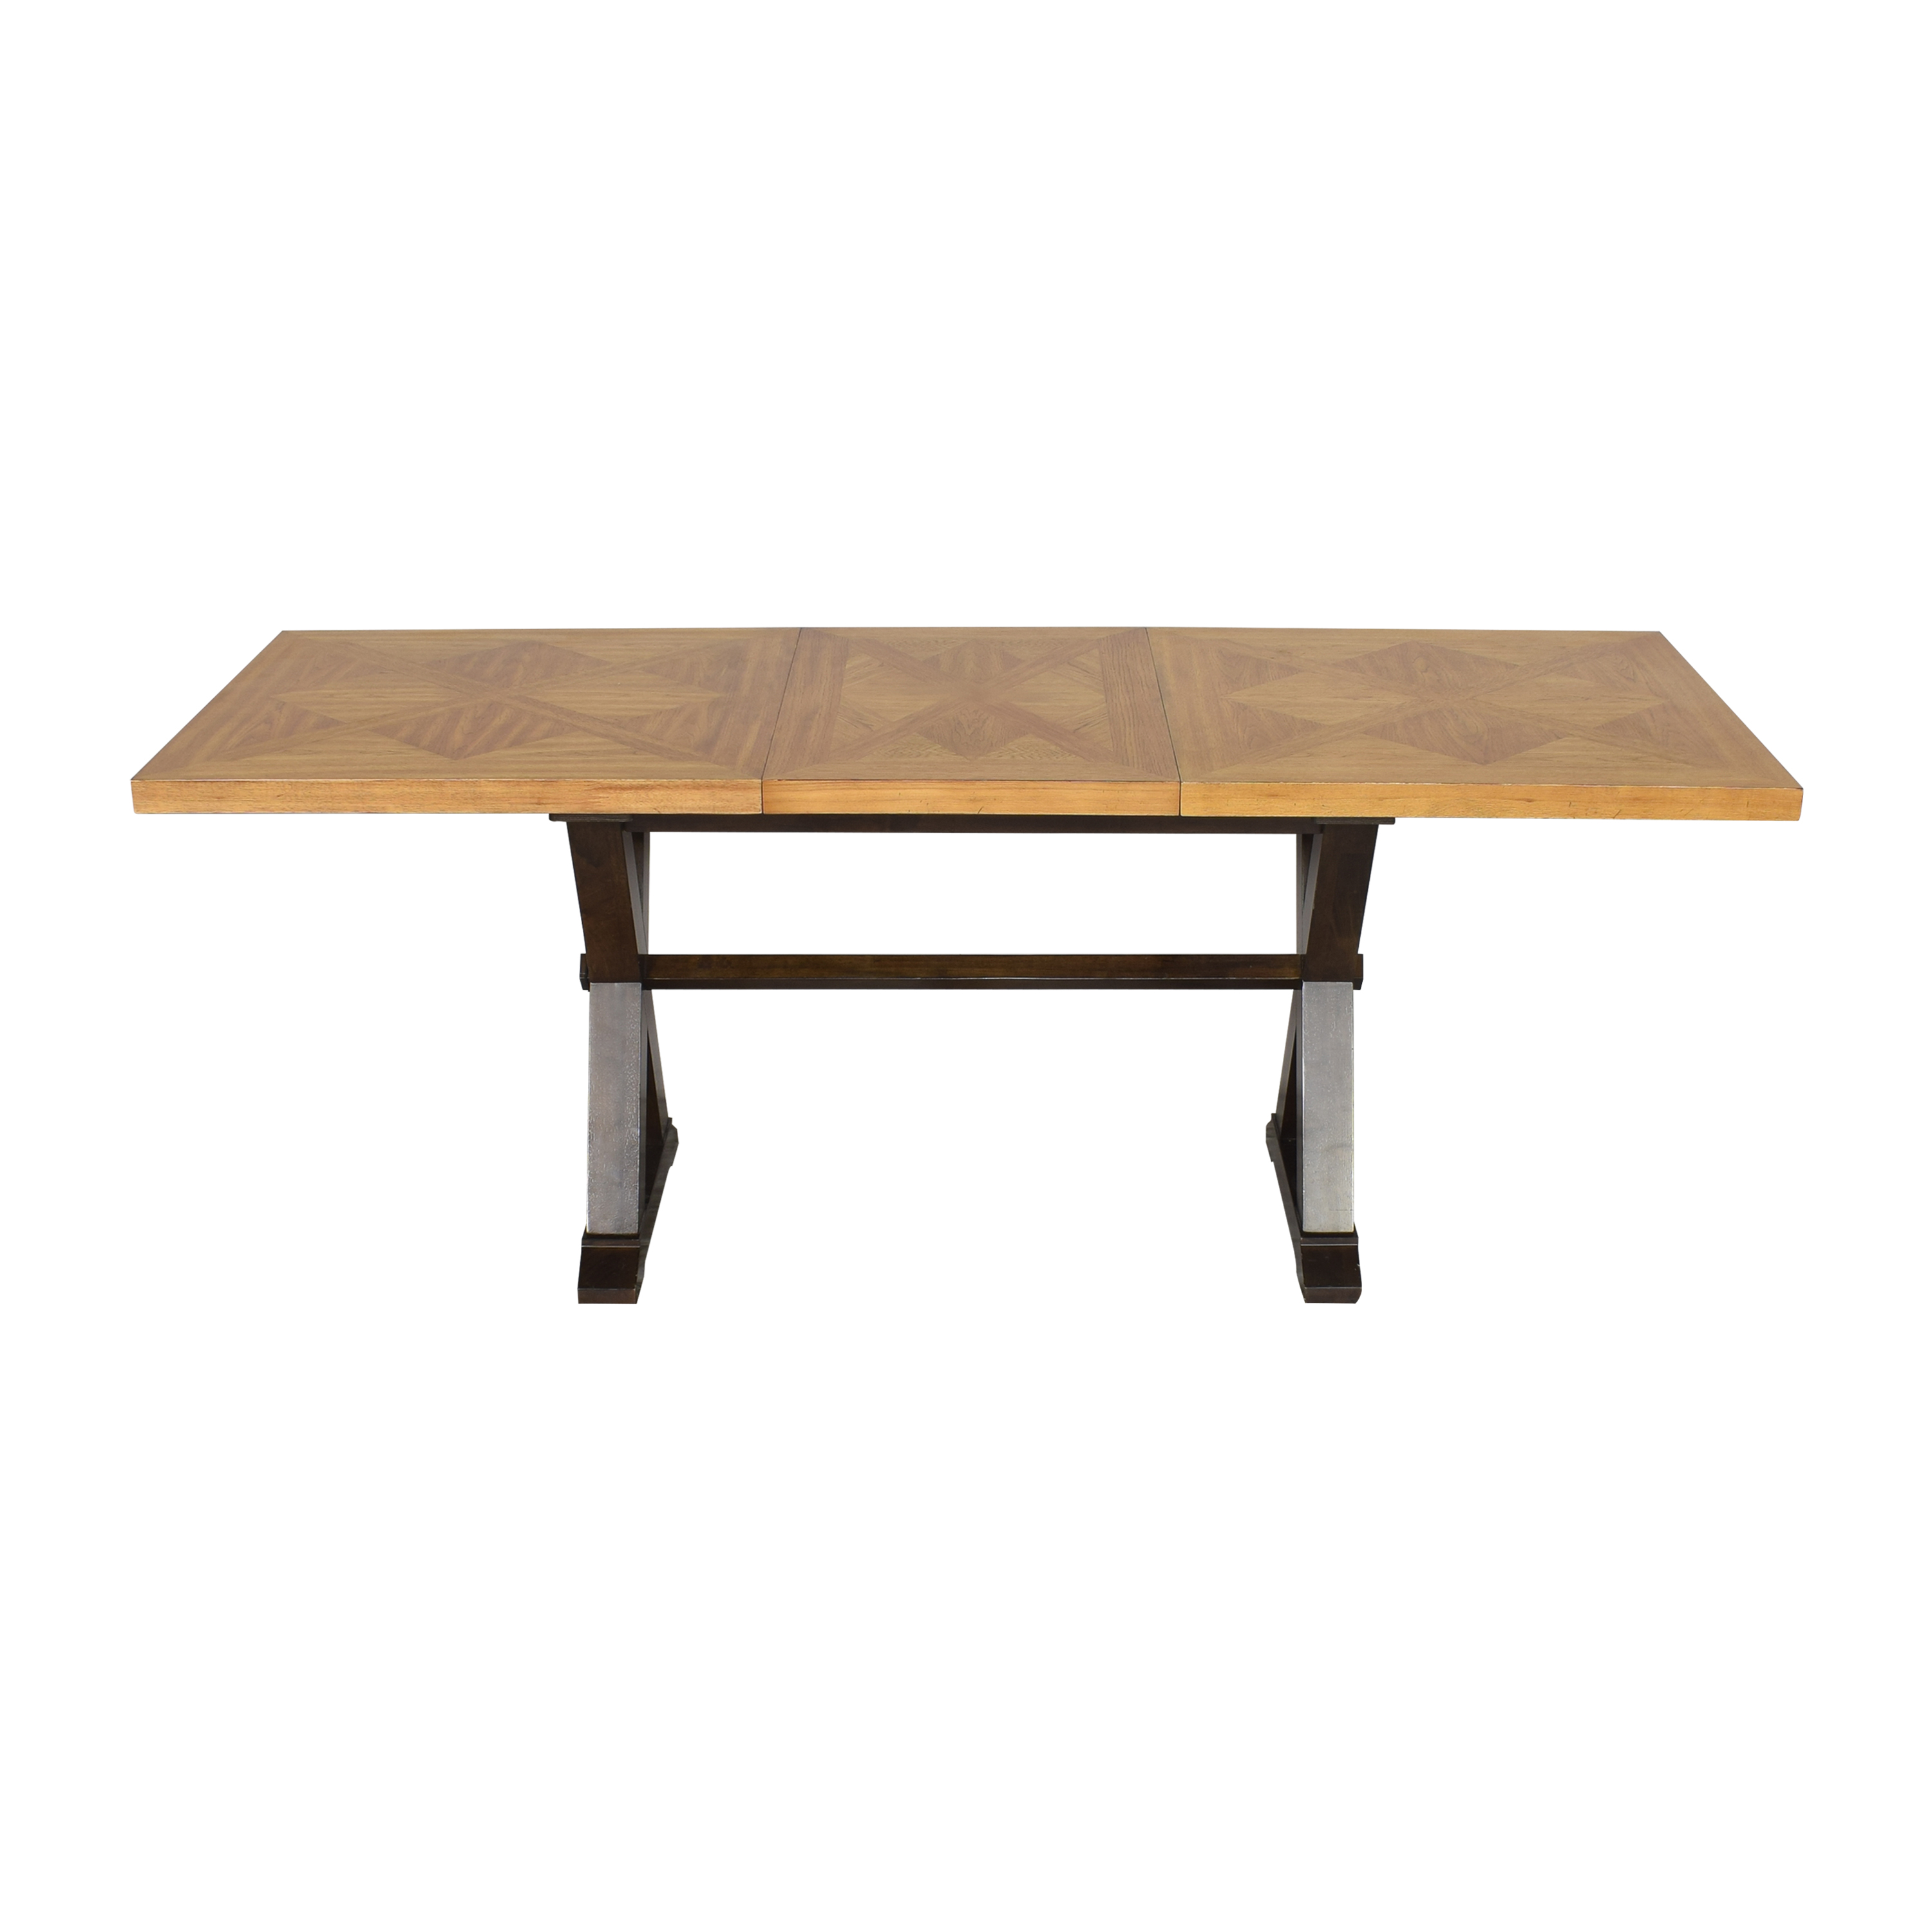 buy  Raymour & Flanigan Wexford Counter Height Dining Table Raymour & Flanigan Dinner Tables